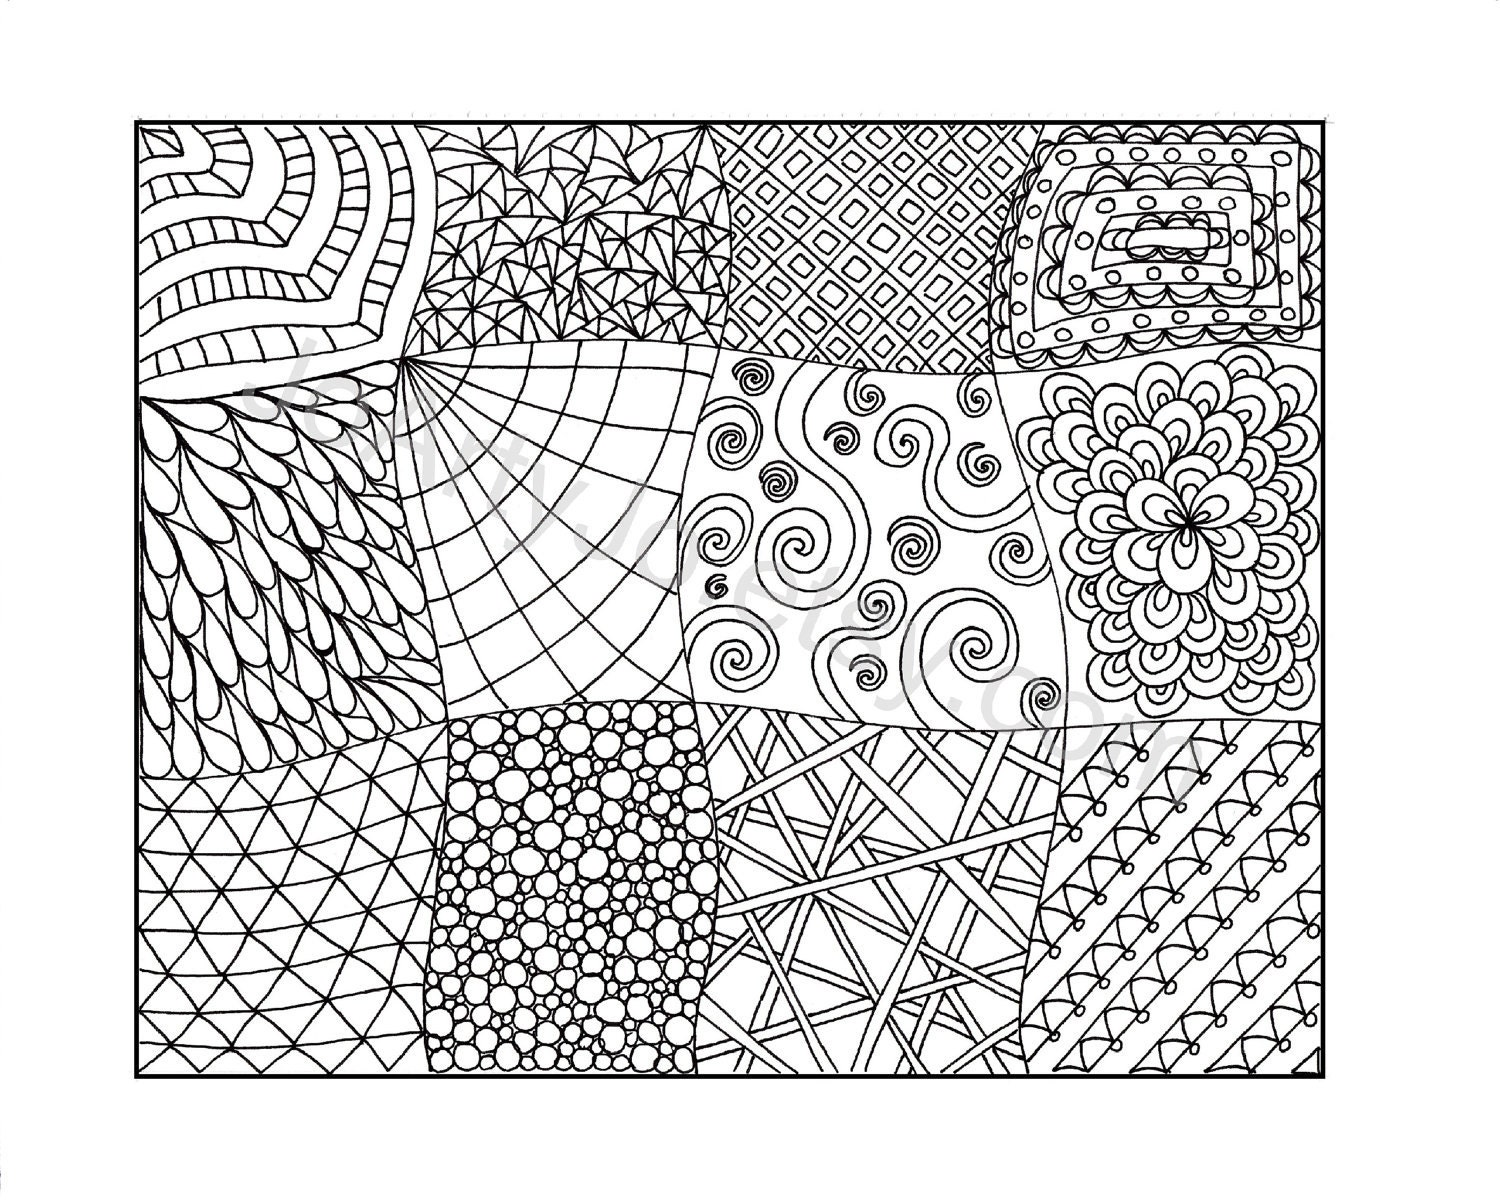 Zendoodle coloring page printable pdf zentangle inspired Zendoodle Coloring Pages Skulls Zenspirations Coloring Pages Zendoodle Coloring Pages Halloween